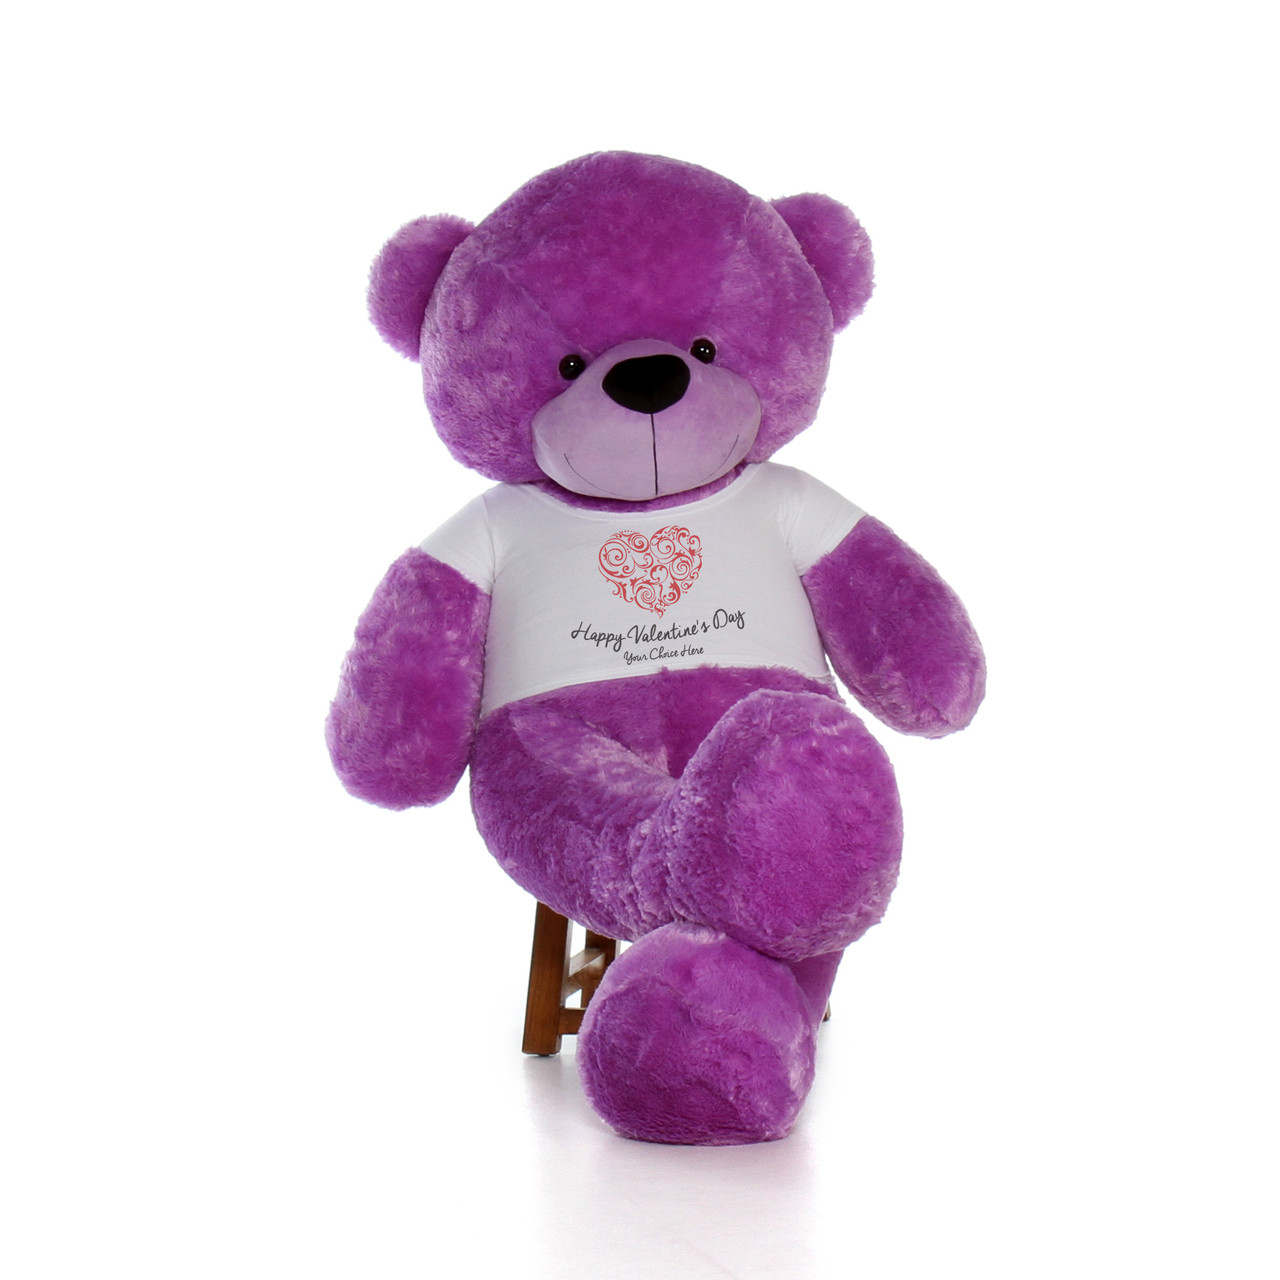 6ft Life Size Happy Valentines Day Teddy Bears